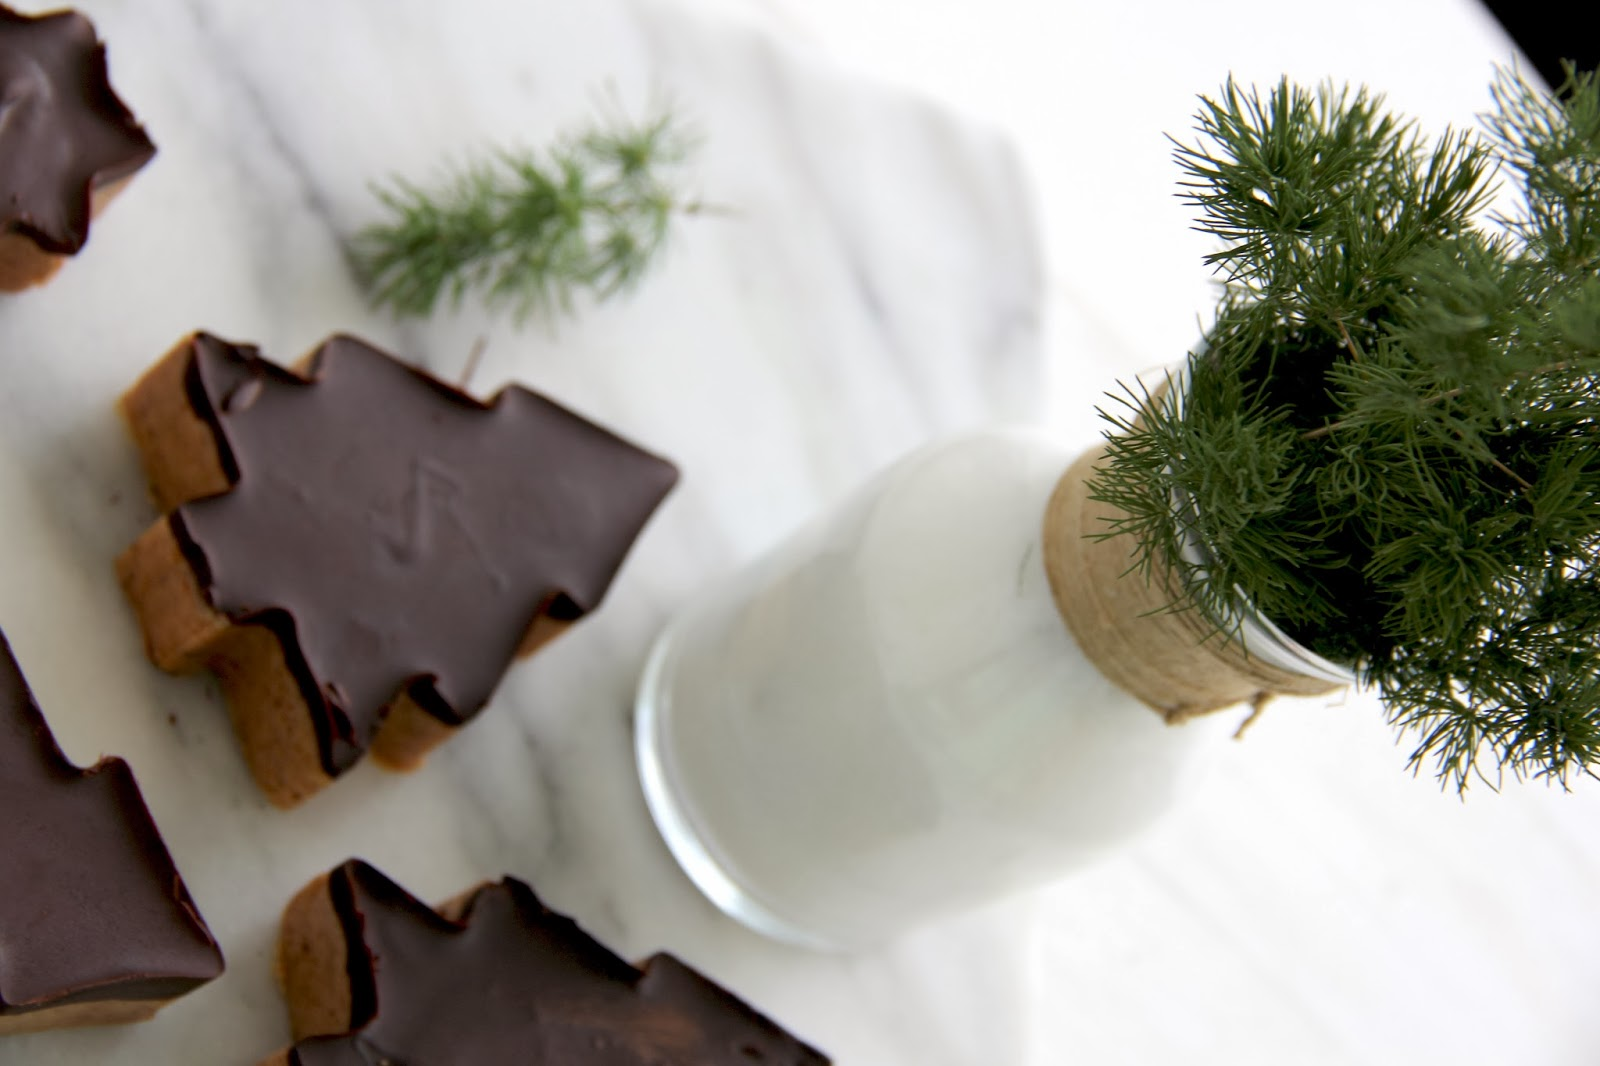 Fashion Gourmet: Peanut Butter And Chocolate Christmas Trees